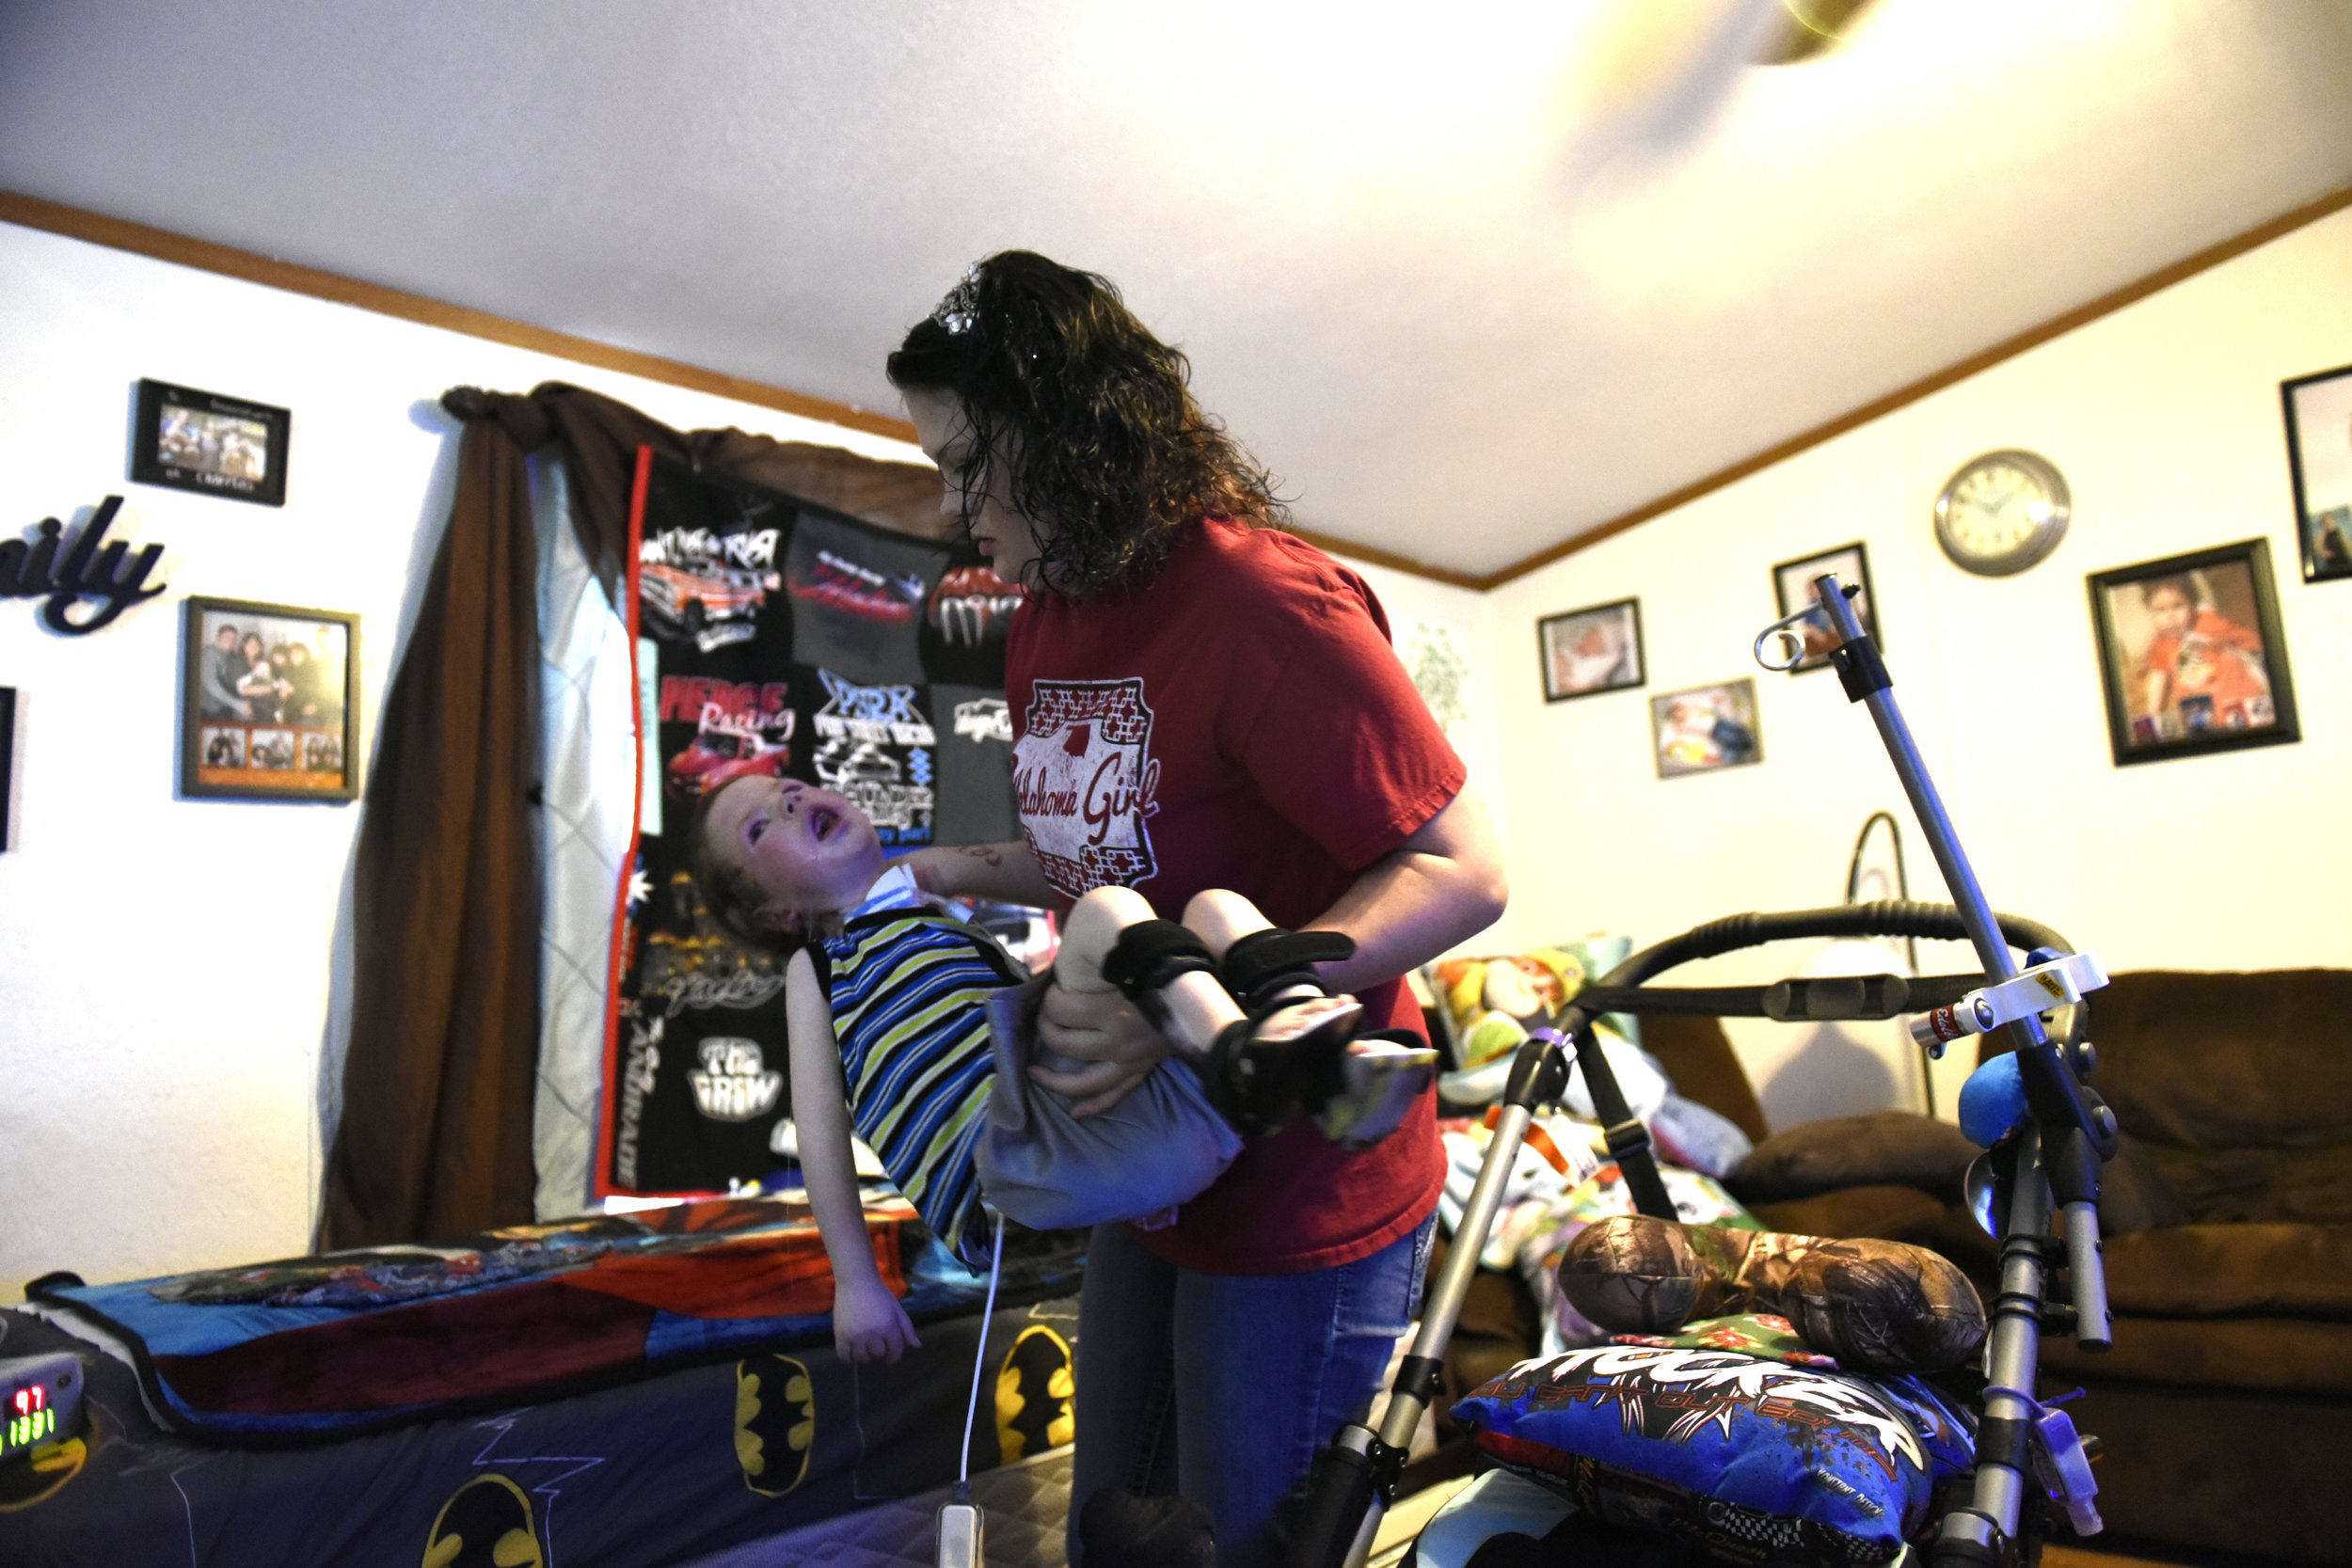 Amanda Chaffin lifts her son Kayden, 4, who suffers from Spinal Muscular Atrophy at their home in Noble, Oklahoma. Chaffin is worried that cuts to medicaid at the state and national level will soon make the cost of caring for Kayden unaffordable for their family.